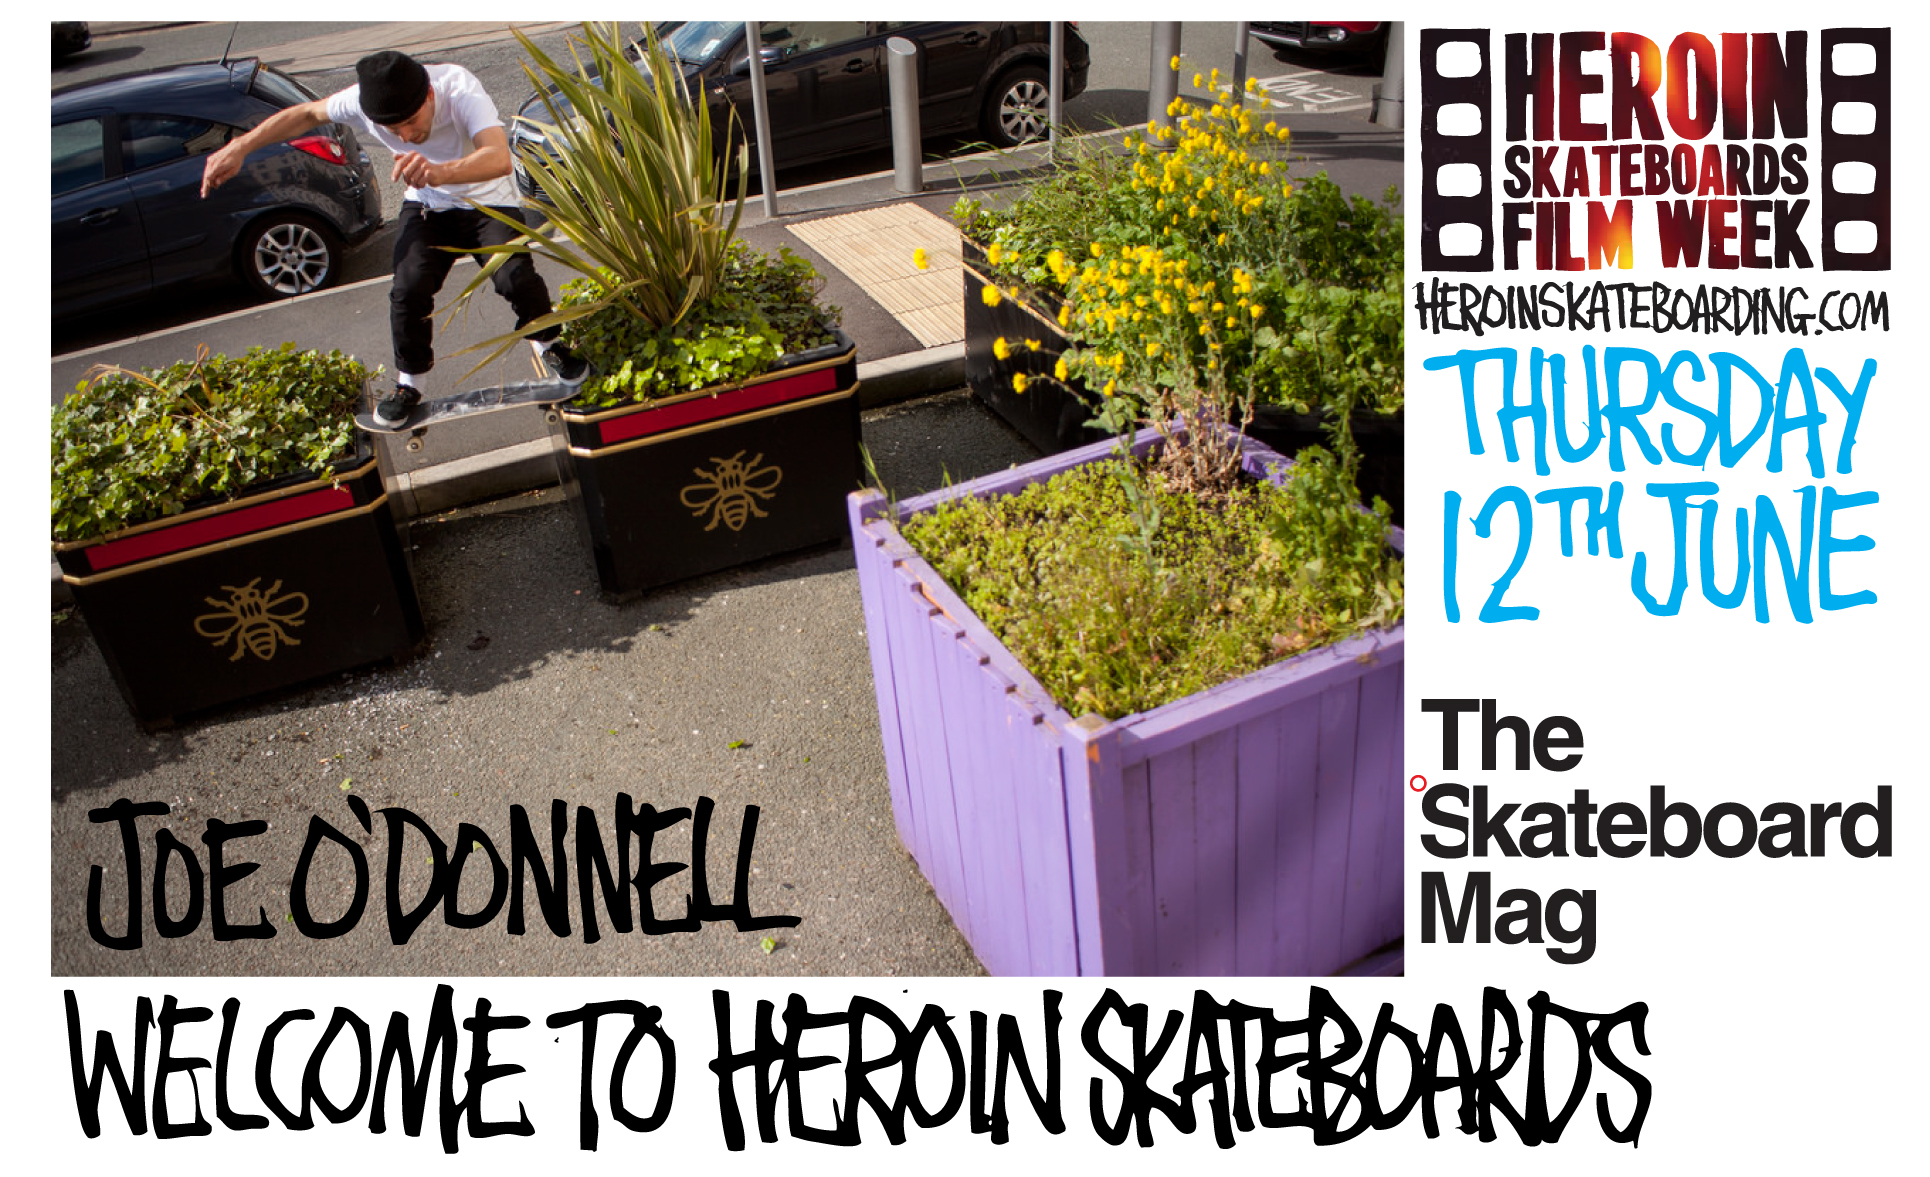 Herojn film week continues with Joe O'Donnells welcome to part. Filmed and edited by James Craven. Joe rips, welcome to the team!